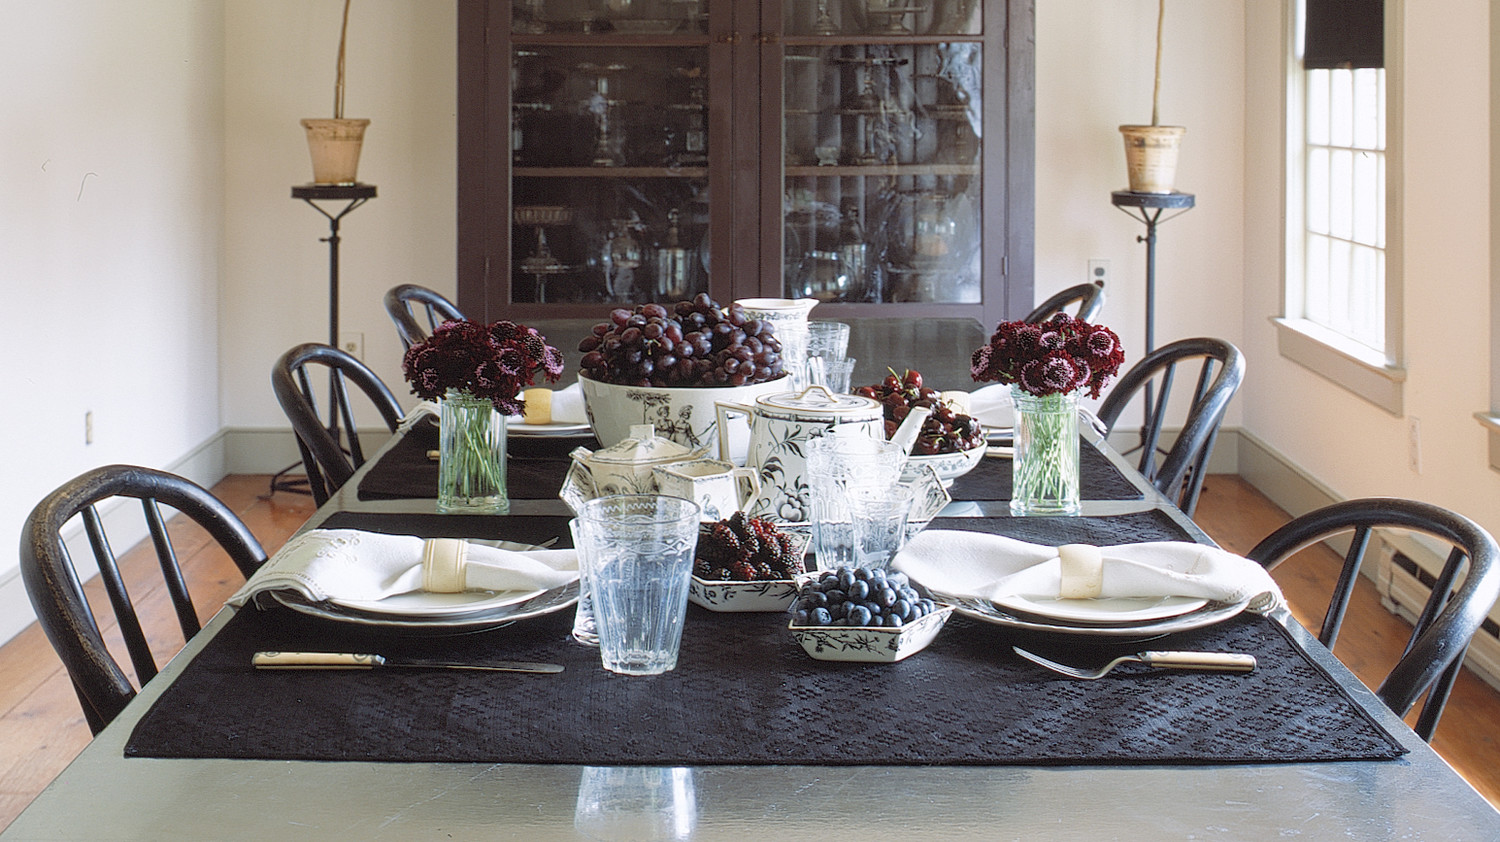 Marthau0027s Turkey Hill Dining Room: 5 Bold Ideas For Decorating With Black